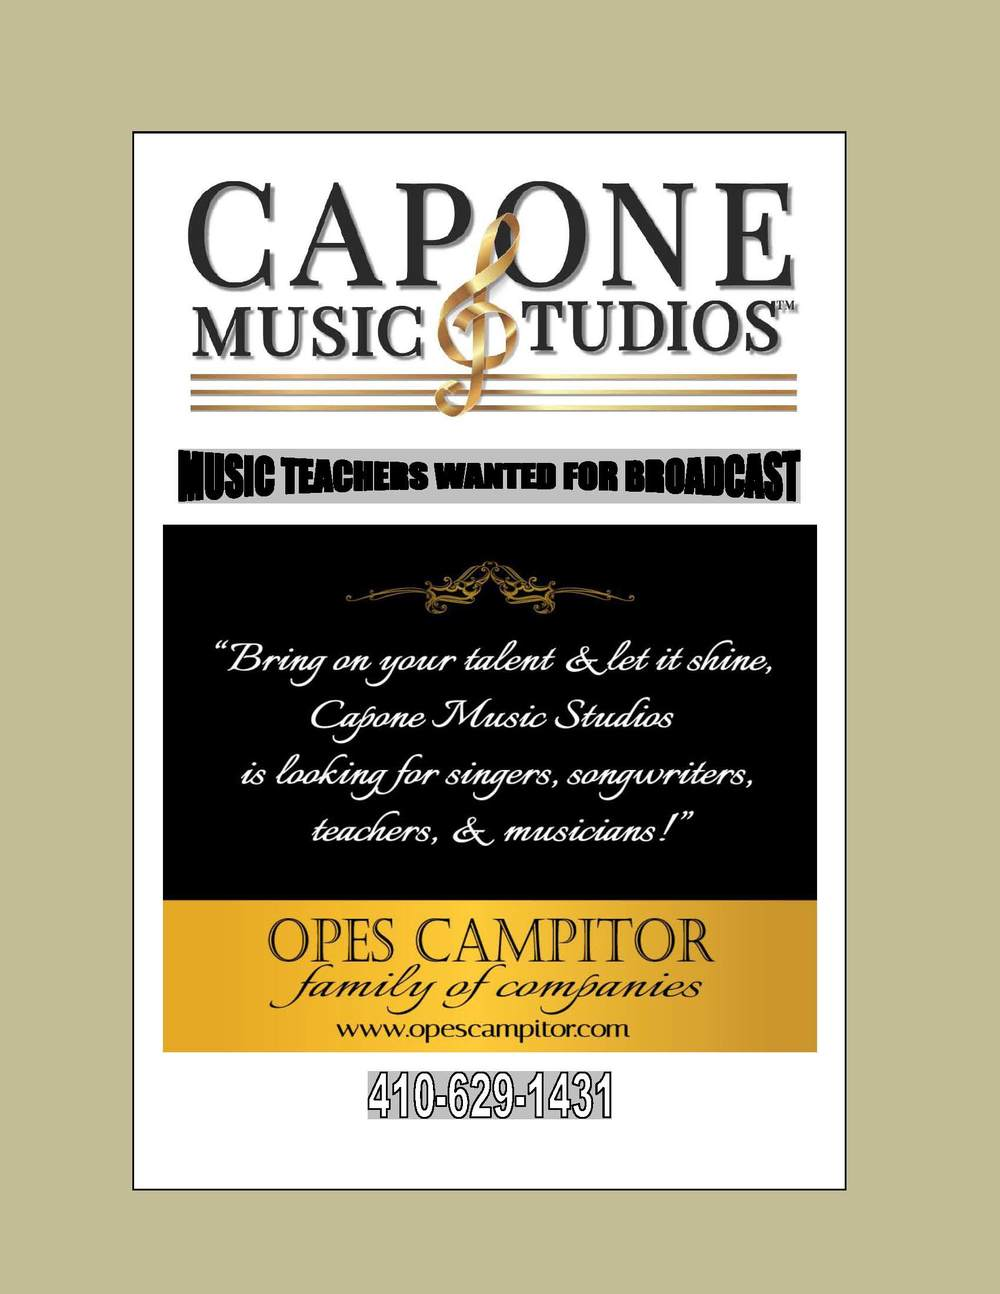 Capone Music Studios Music Teachers Wanted.jpg